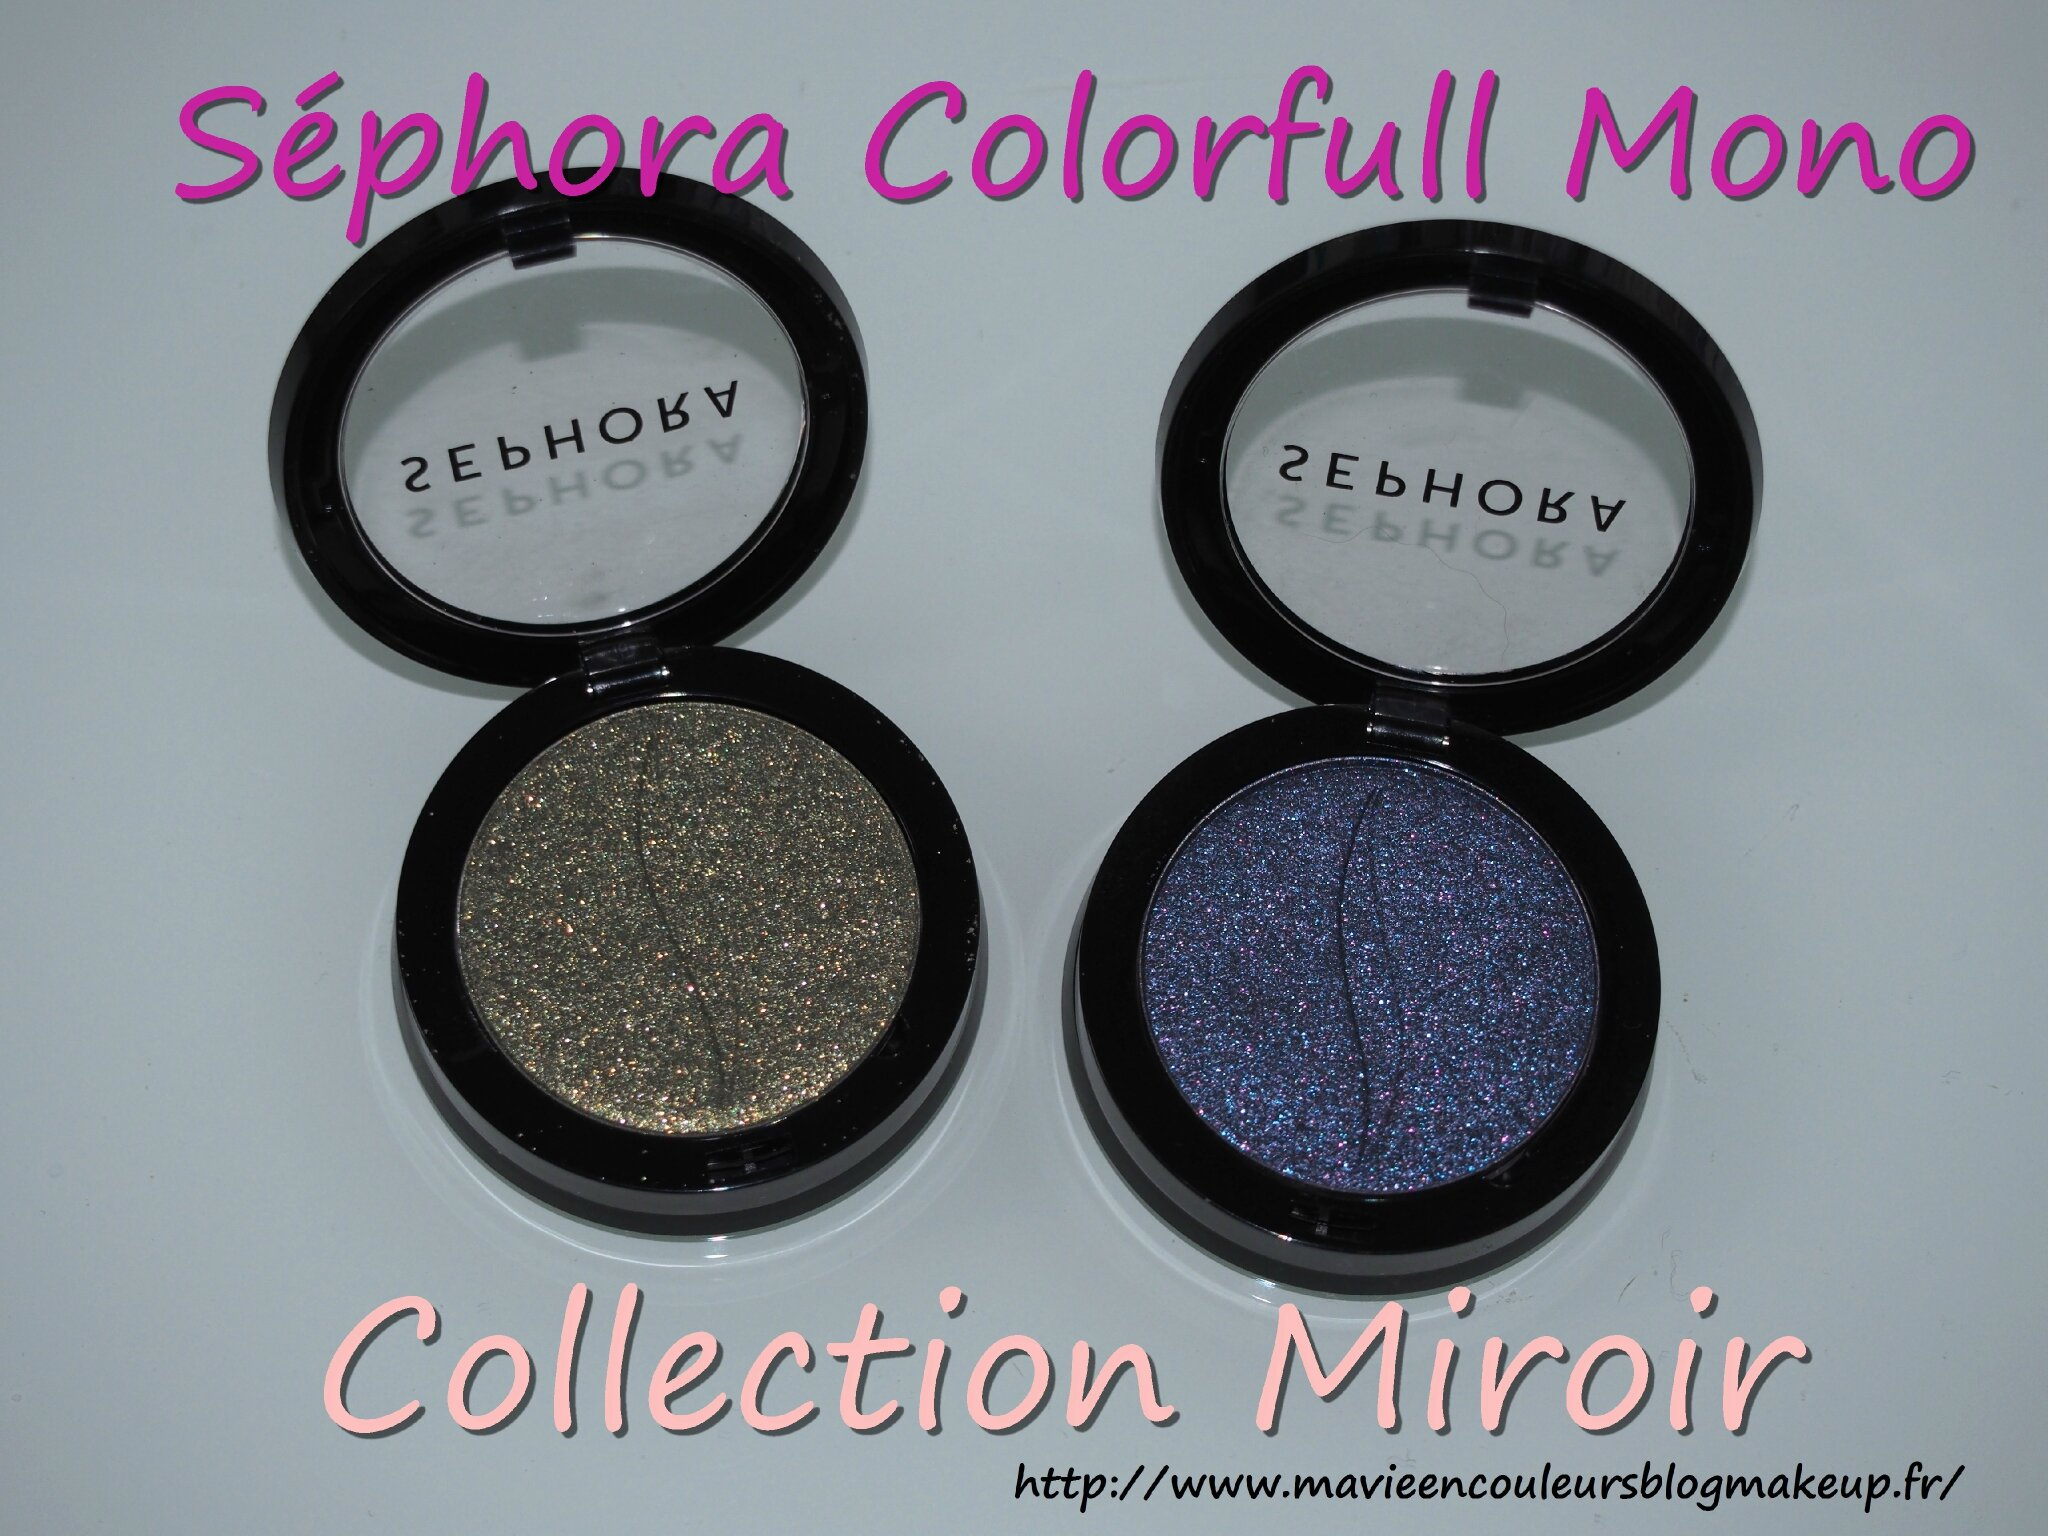 Séphora colorfull mono collection miroir: 99 planet earth & 101 comet chaser.